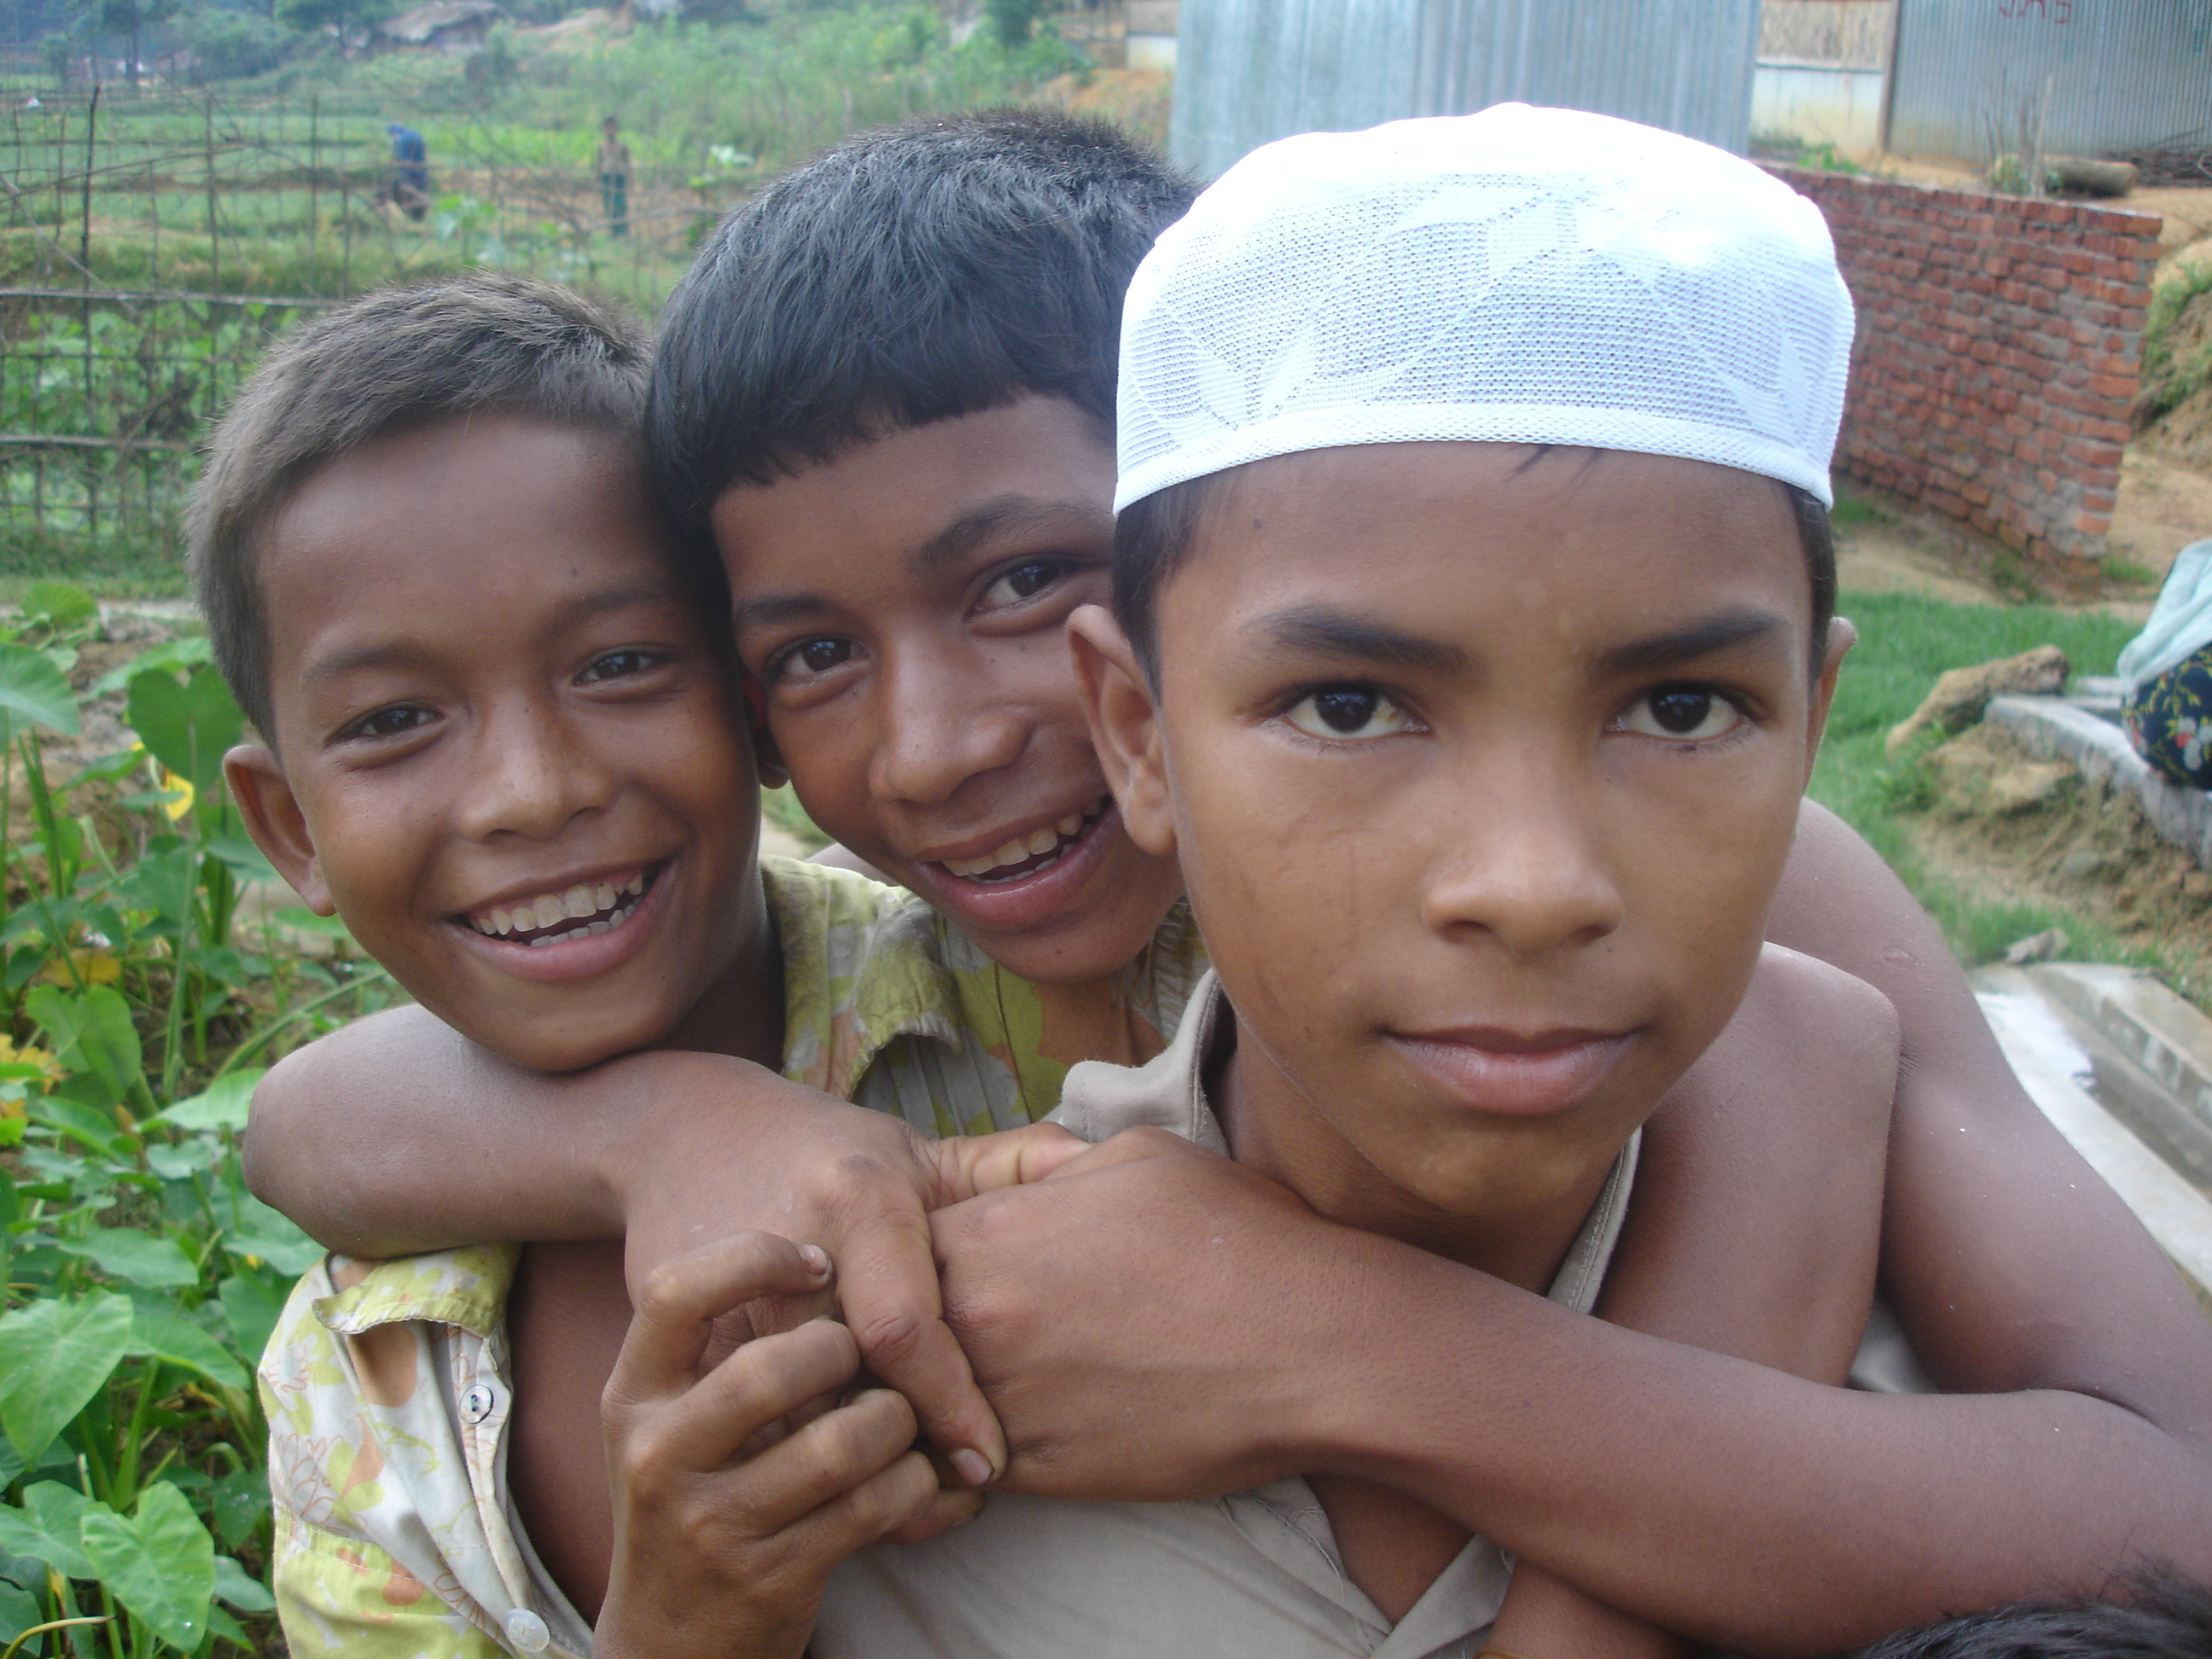 Three Rohingya boys smile to the camera in southern Bangladesh. Muslim residents from Myanmar's northern Rakhine State, the Rohingya are de jure stateless in accordance to the laws of Myanmar